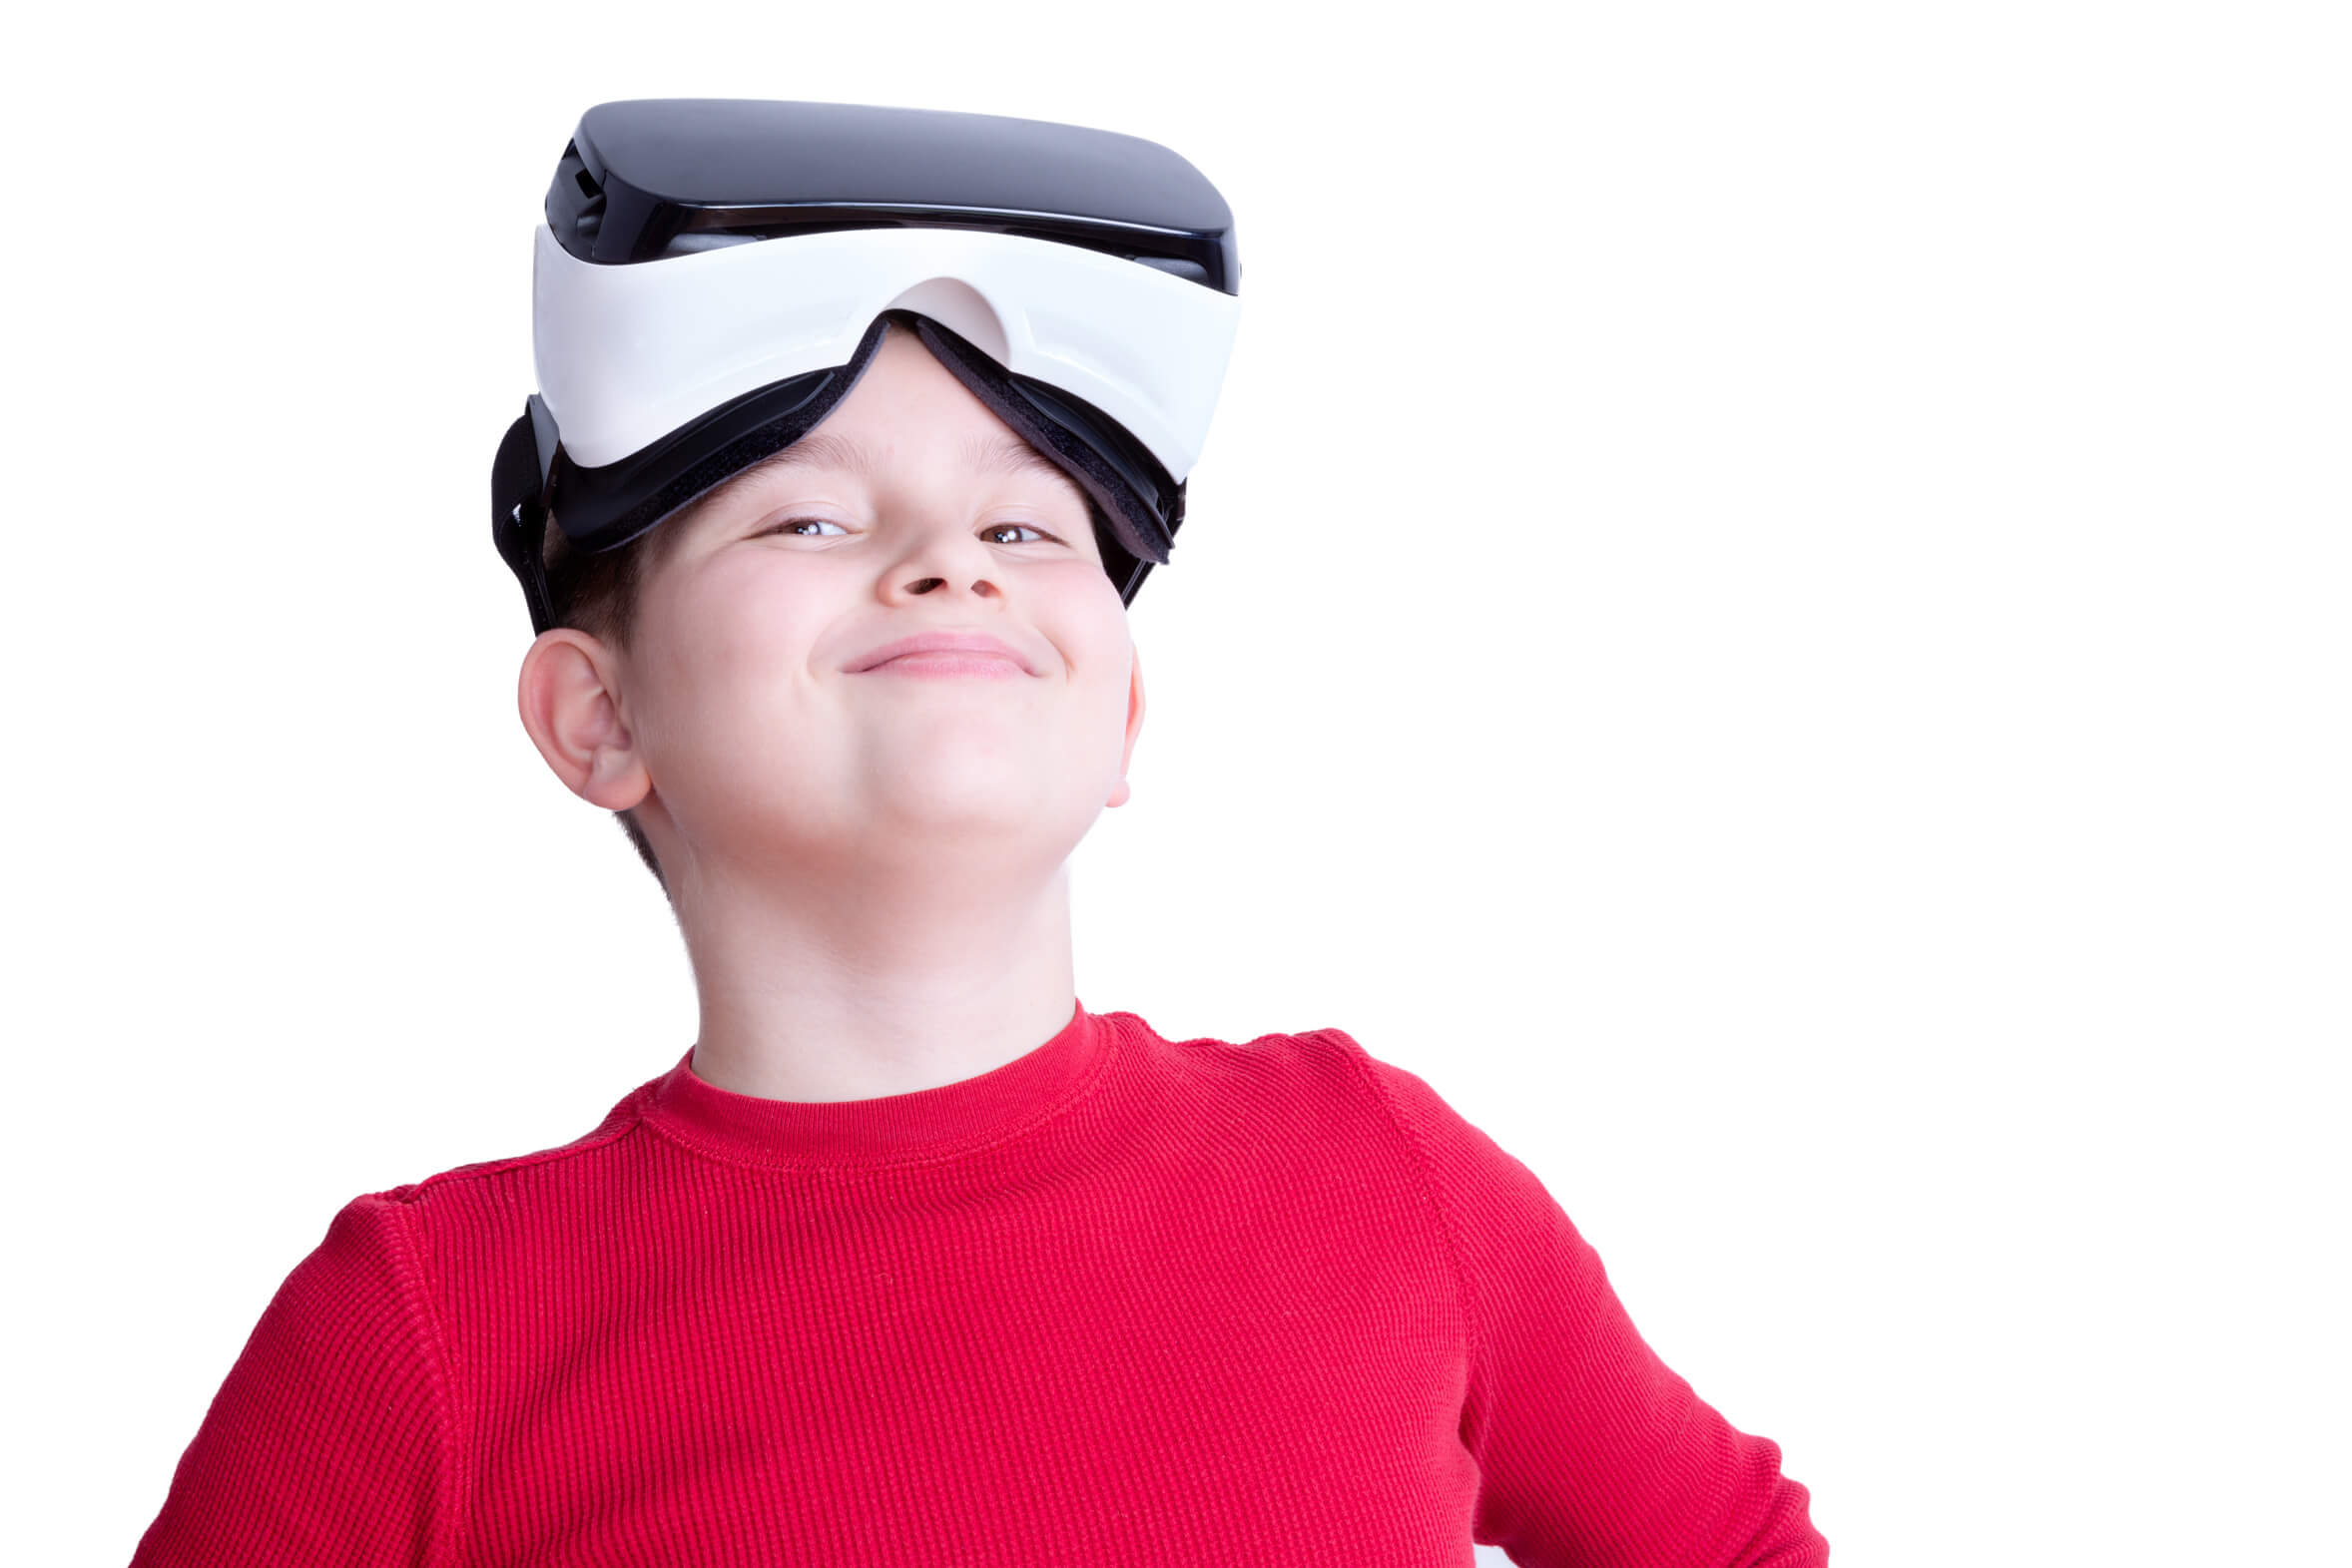 VR-KIDS_connected-reality.com